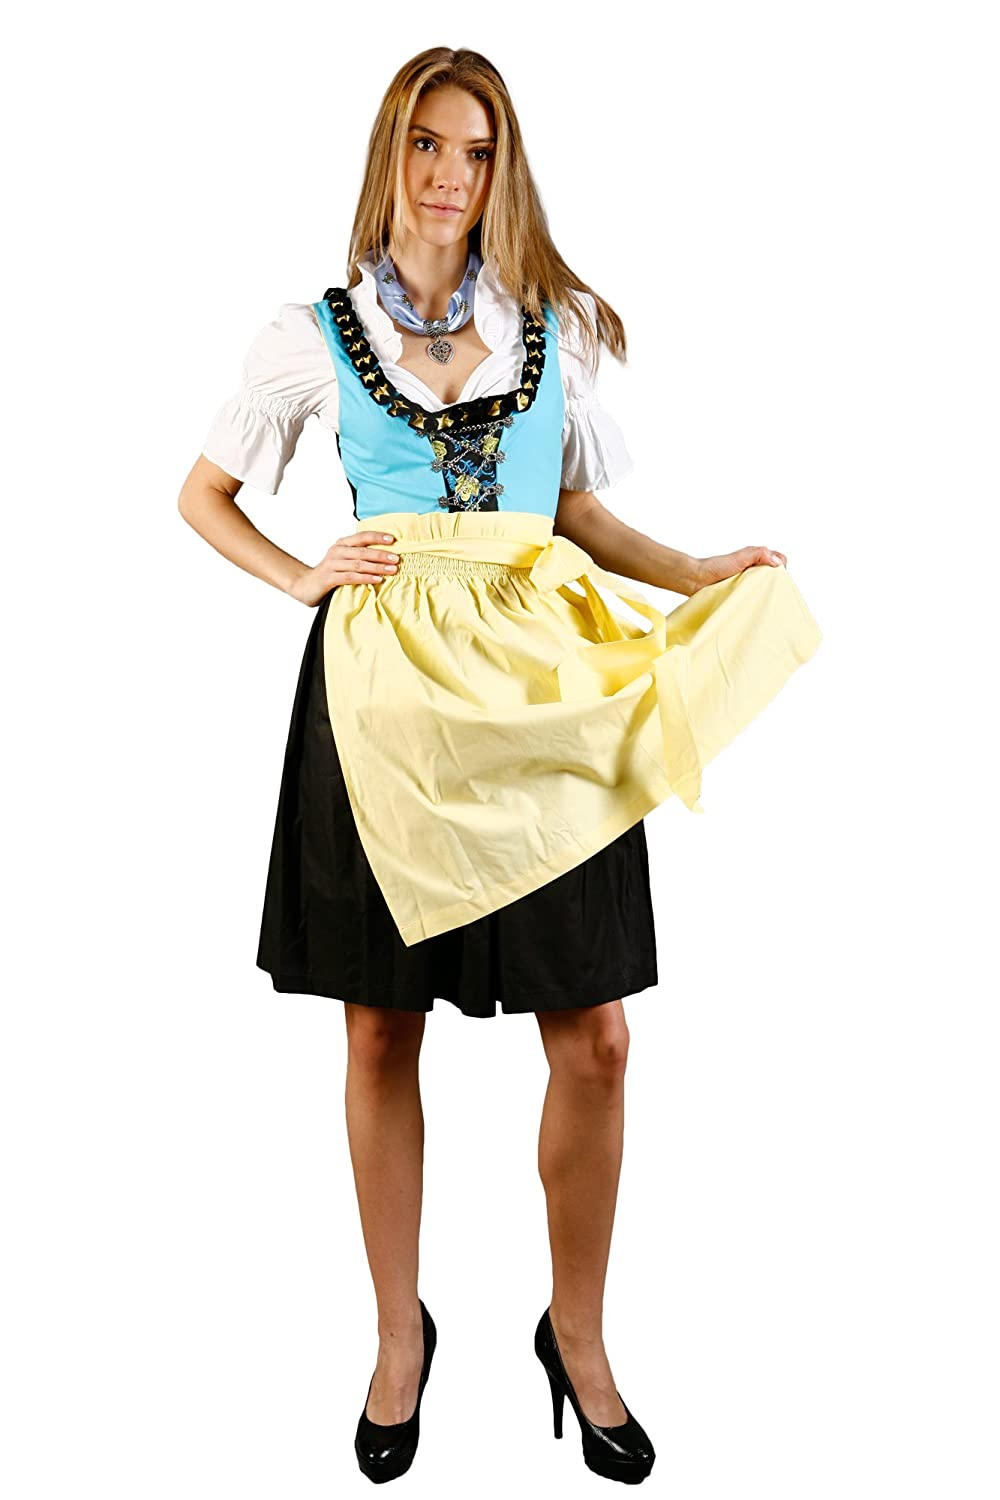 Trachtenjager Mini Dirndl 3-Light Blue Yellow Black With Matching Blouse And Skirt Size 38